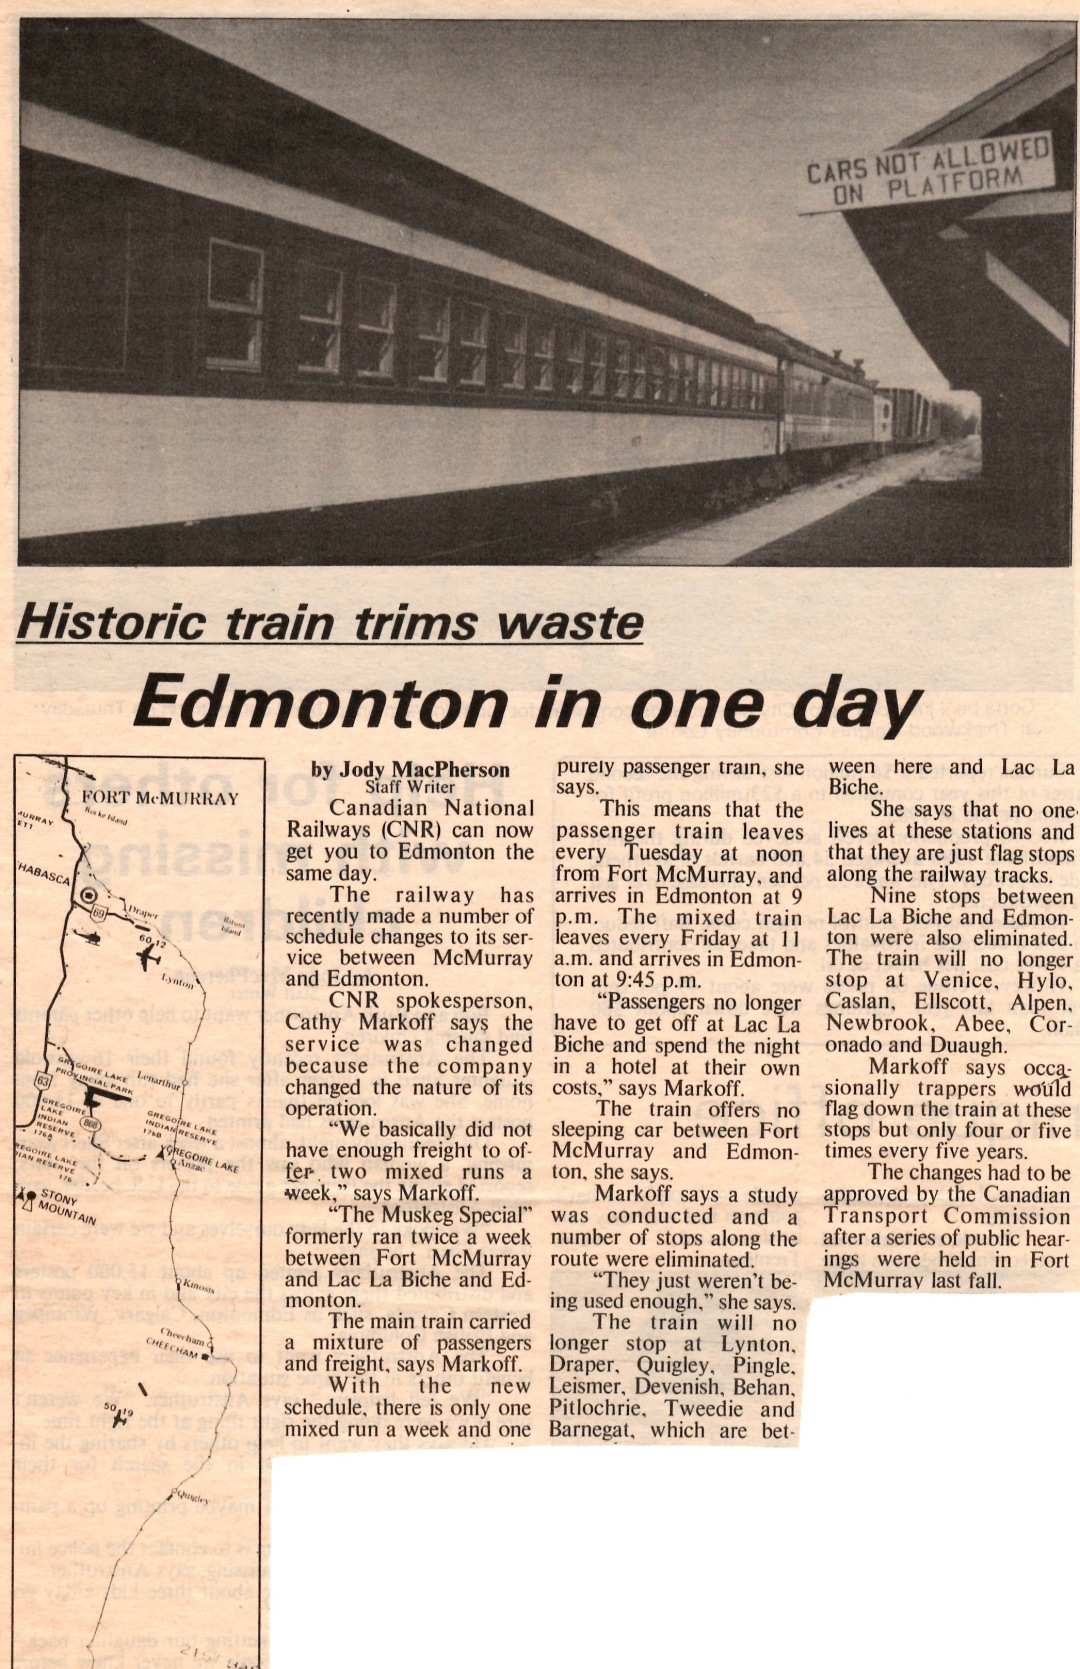 Newspaper clipping from Fort McMurray Express July 1986